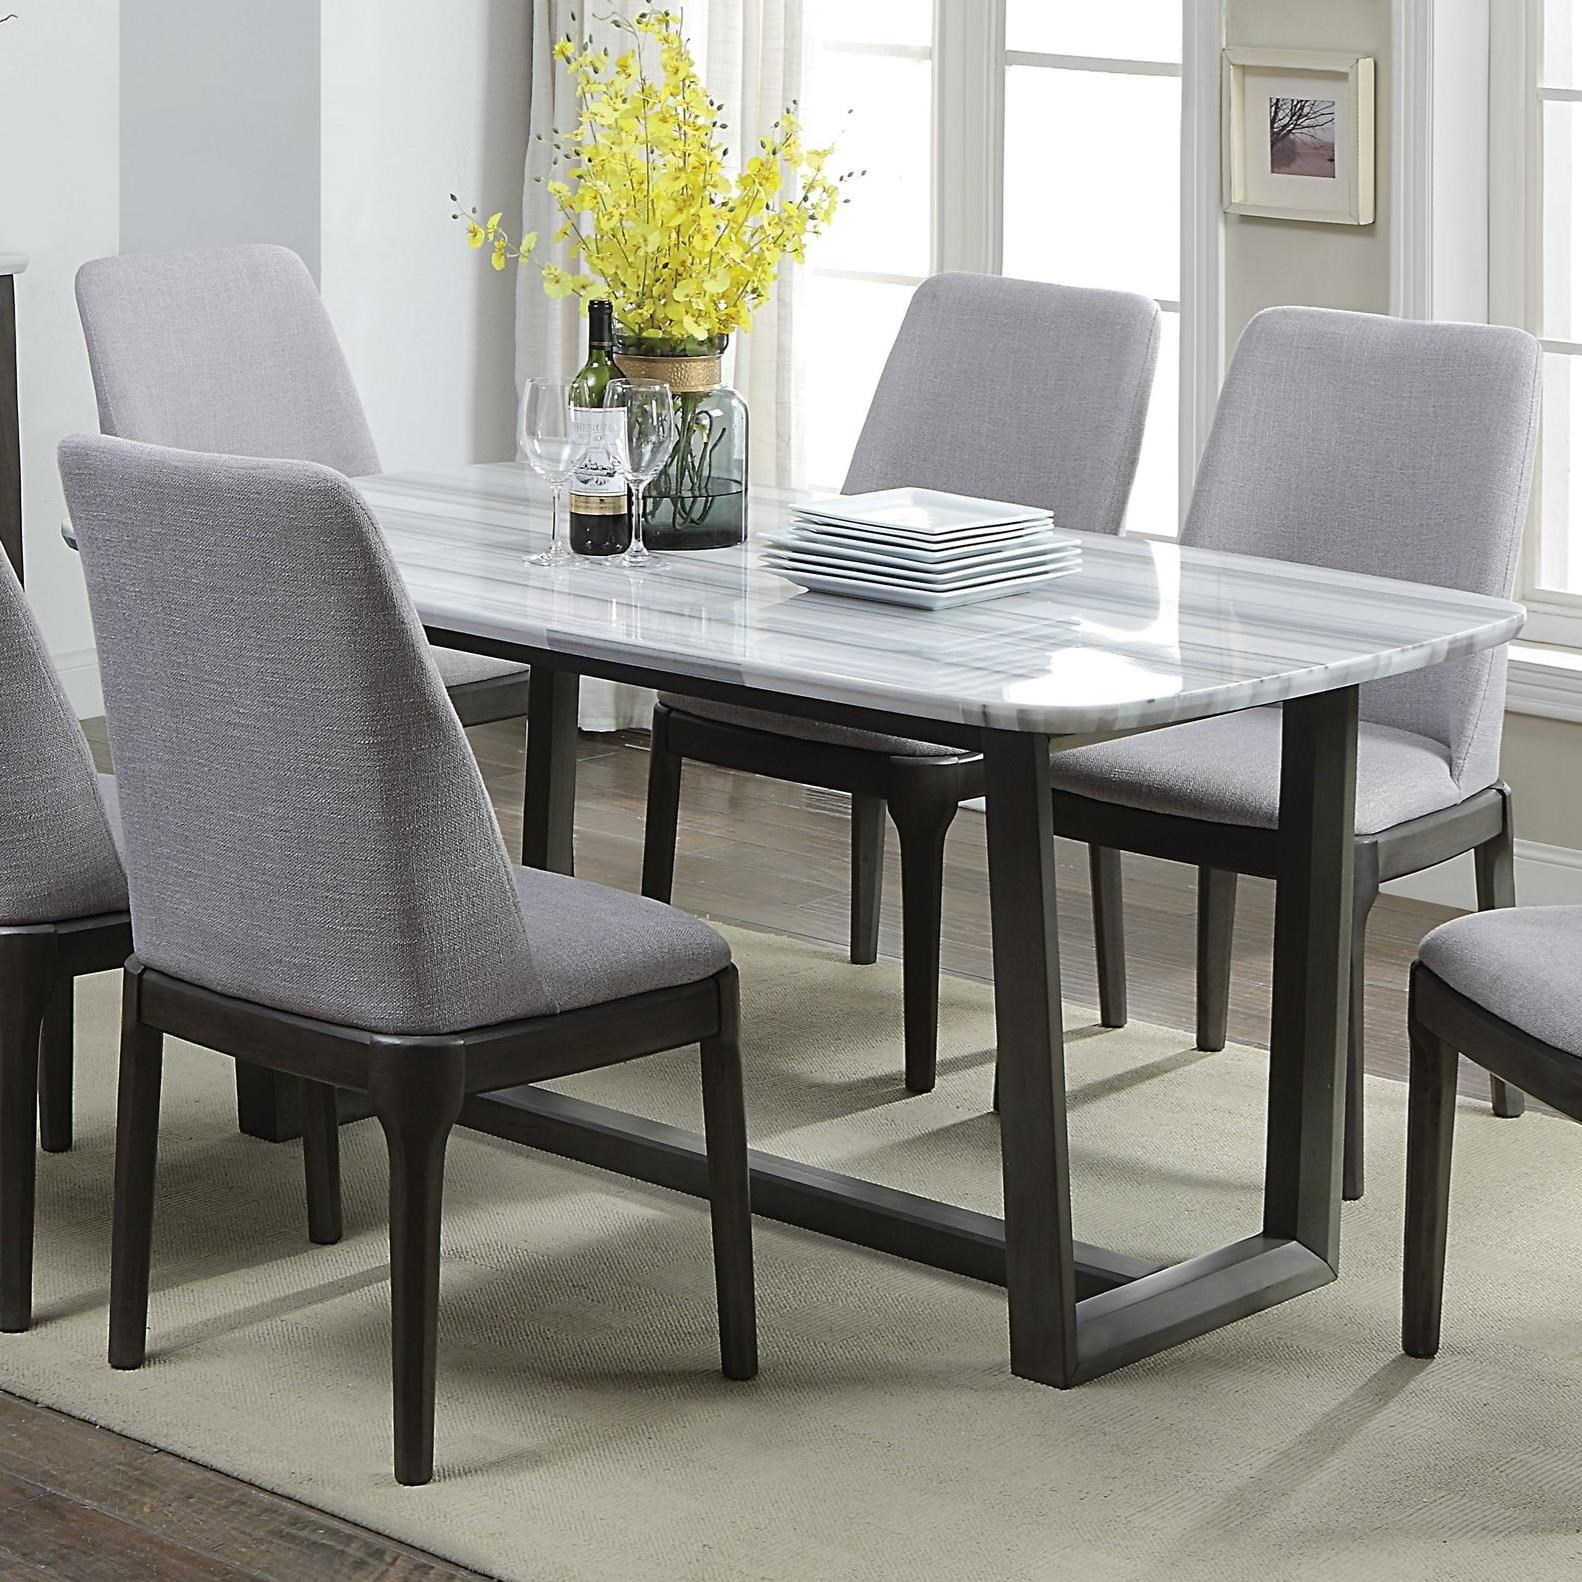 Madan Dining Table by Acme Furniture at A1 Furniture & Mattress